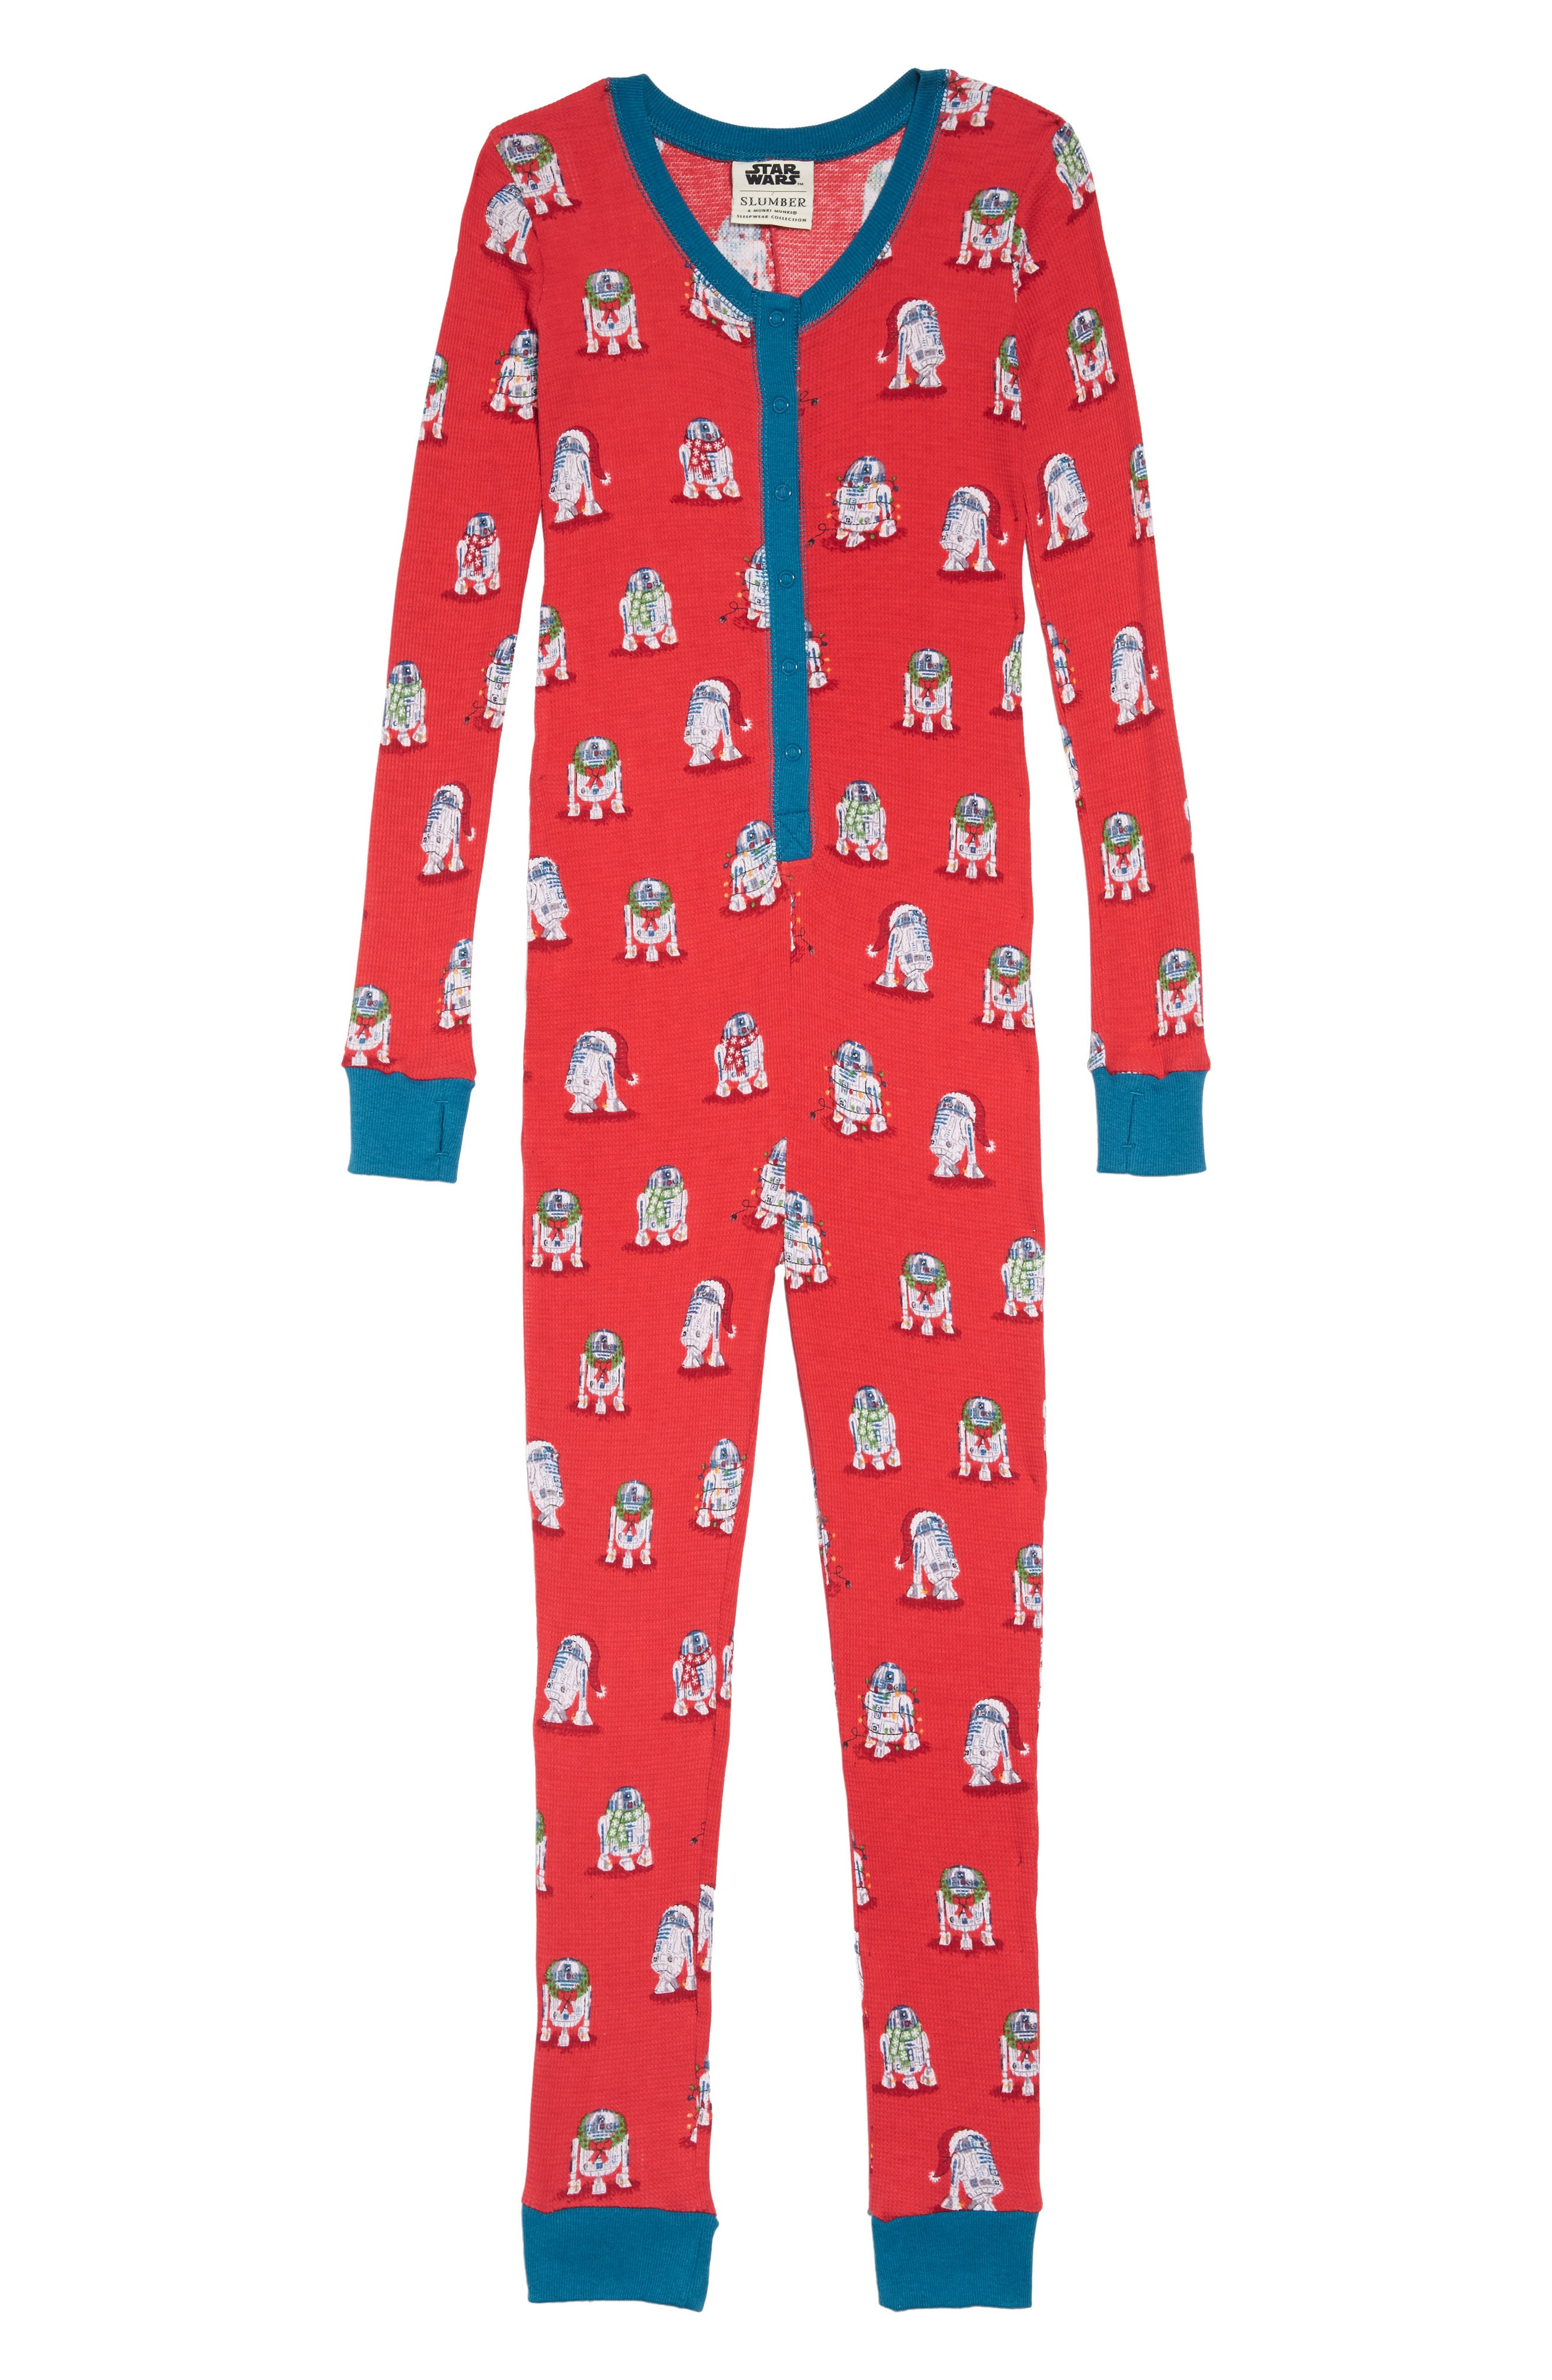 x Star Wars<sup>™</sup> Christmas R2-D2 Fitted One-Piece Pajamas,                         Main,                         color, 600